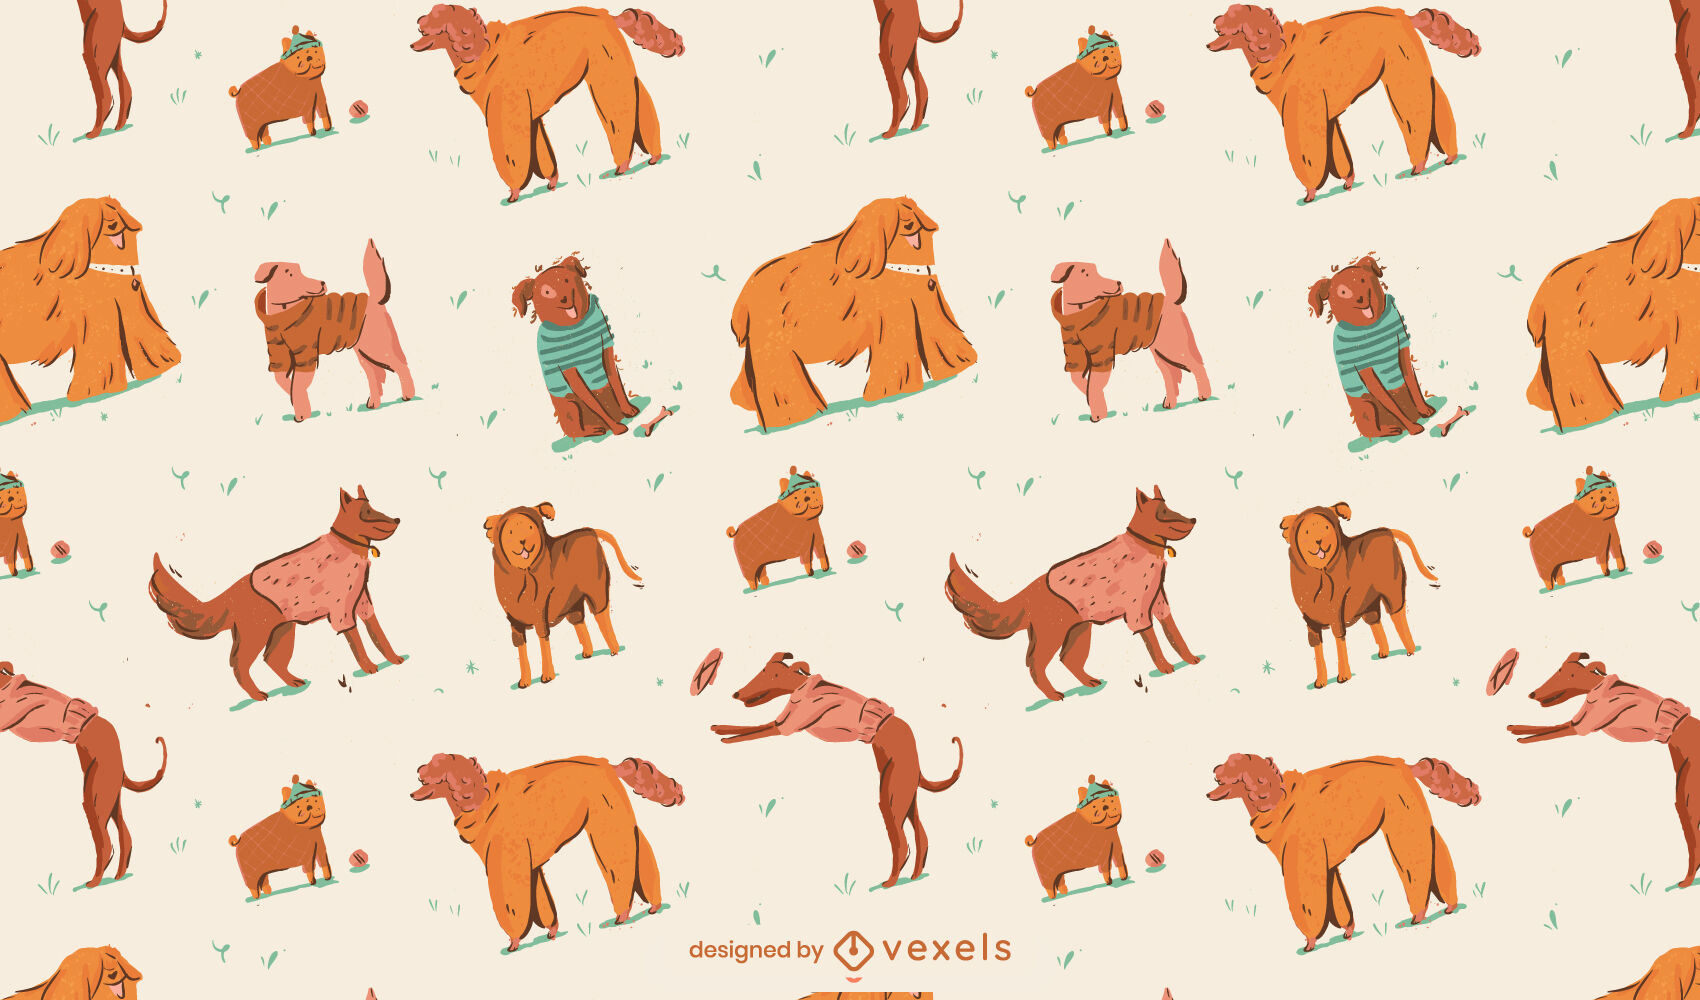 Dogs in clothes animal pattern design